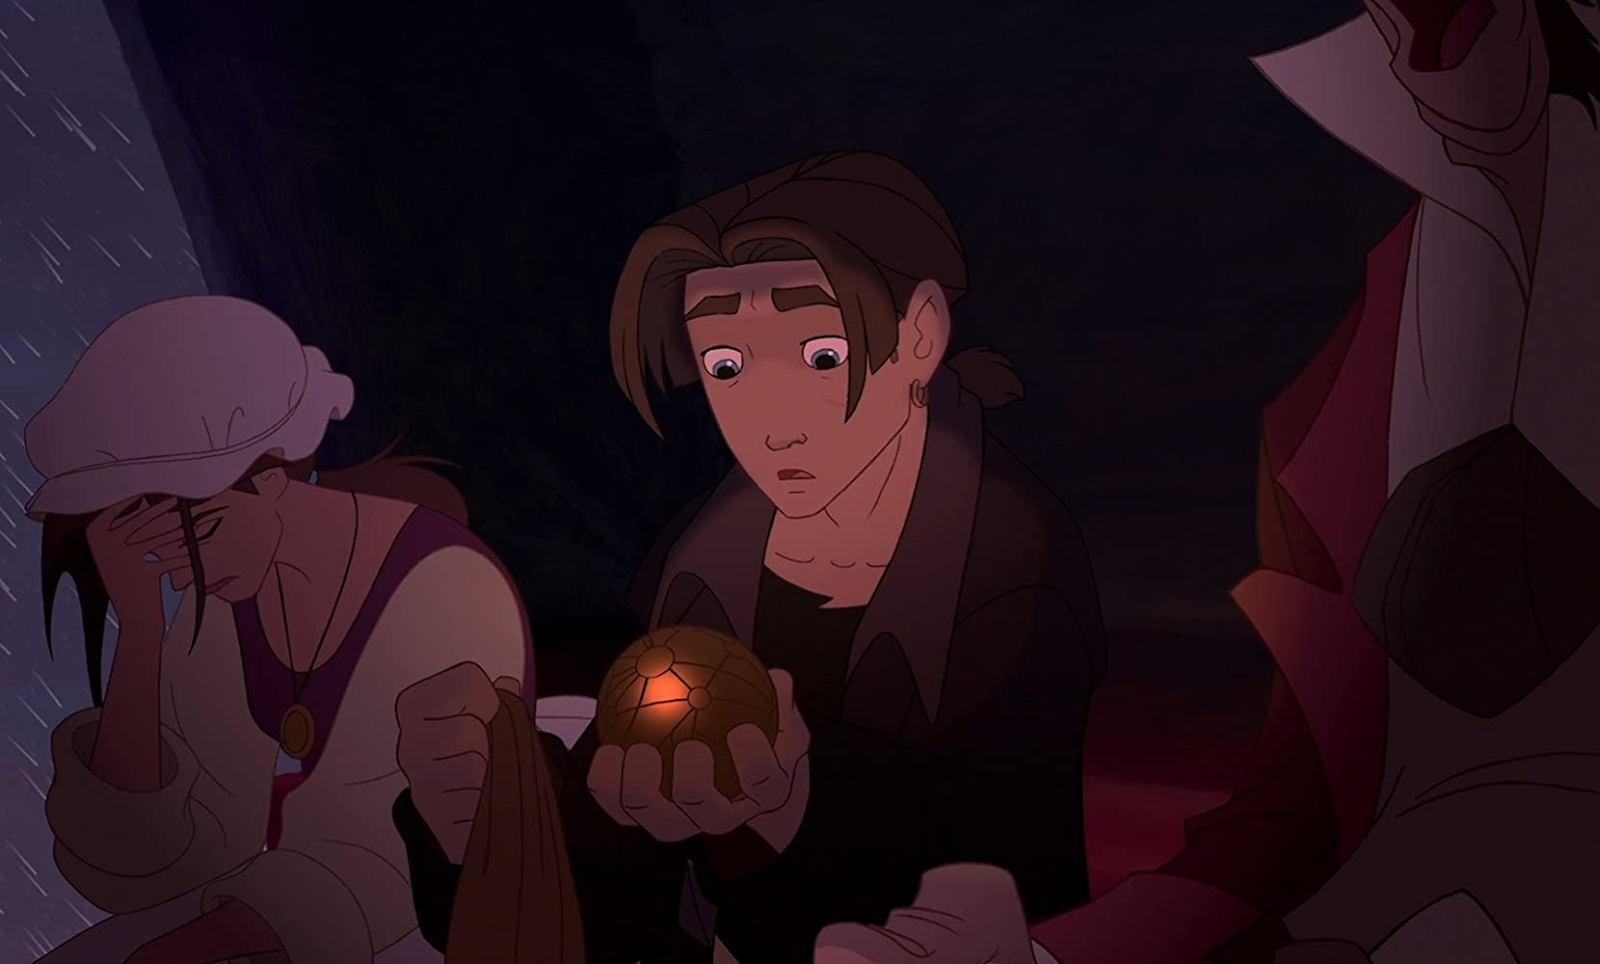 Still from Treasure Planet. Jim Hawkins inspects an ornate golden sphere.